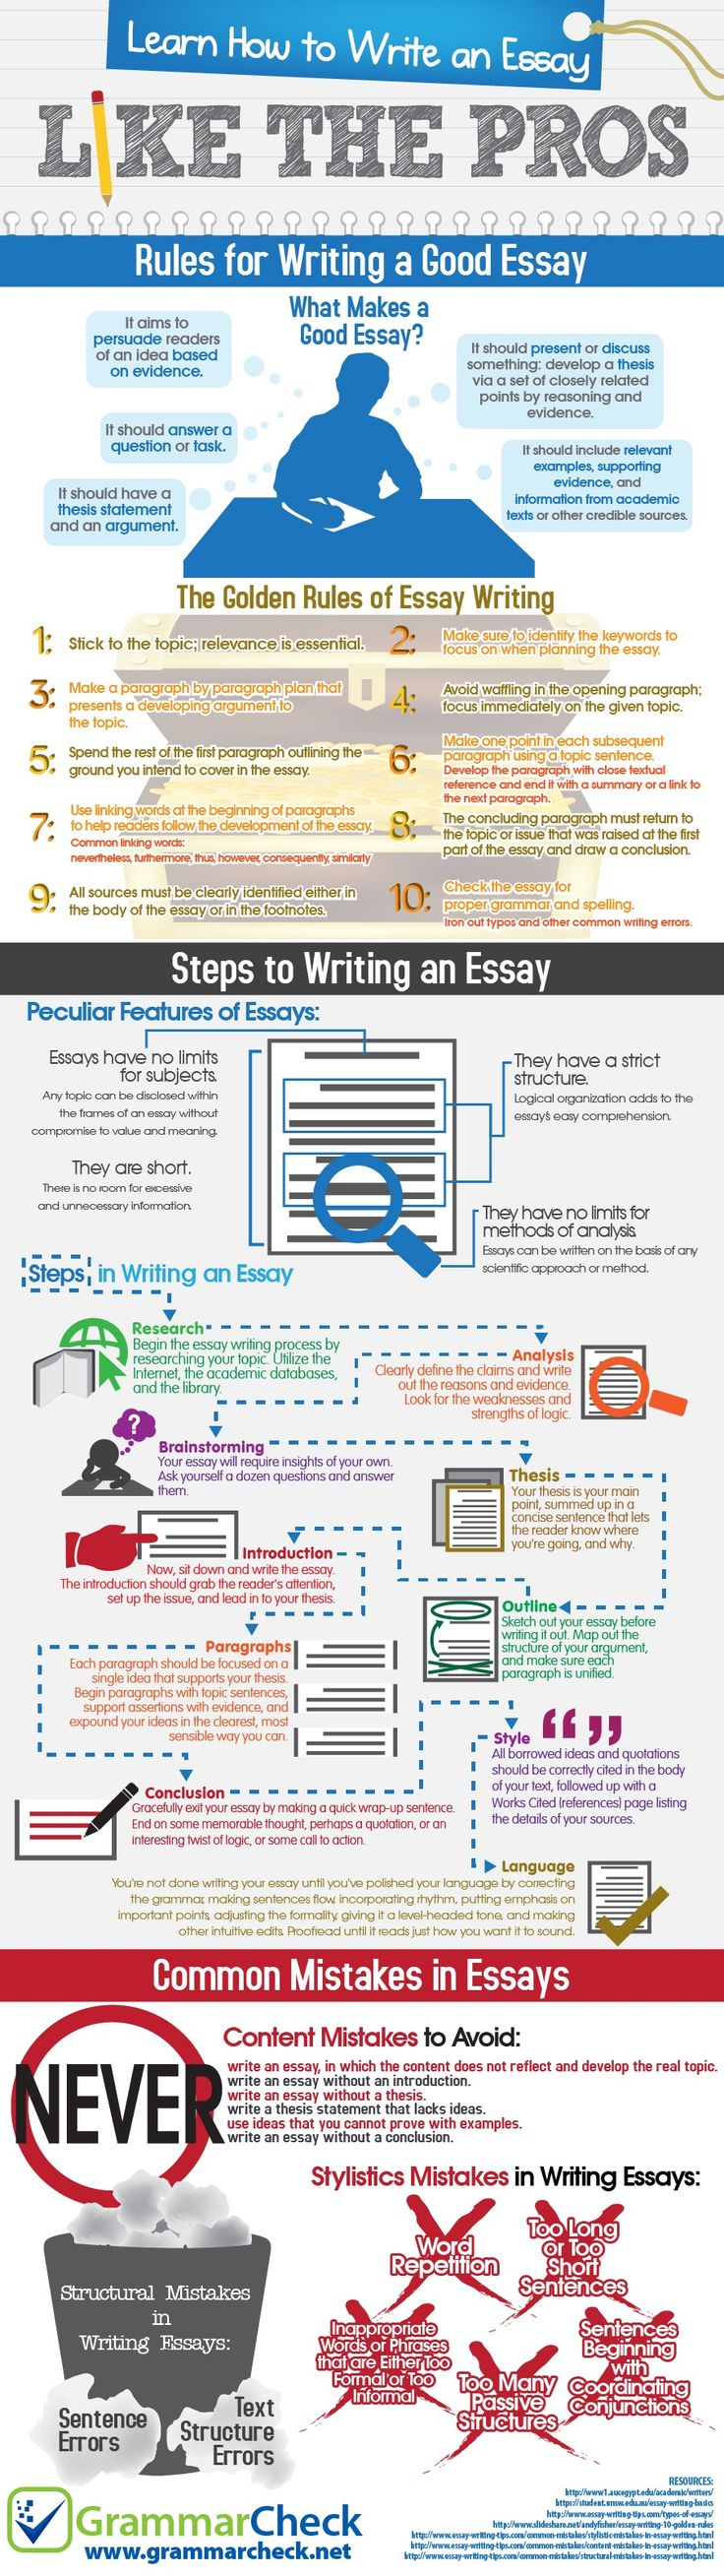 the best good essay ideas how to write essay what makes a good essay this infographic created by grammar check will teach you